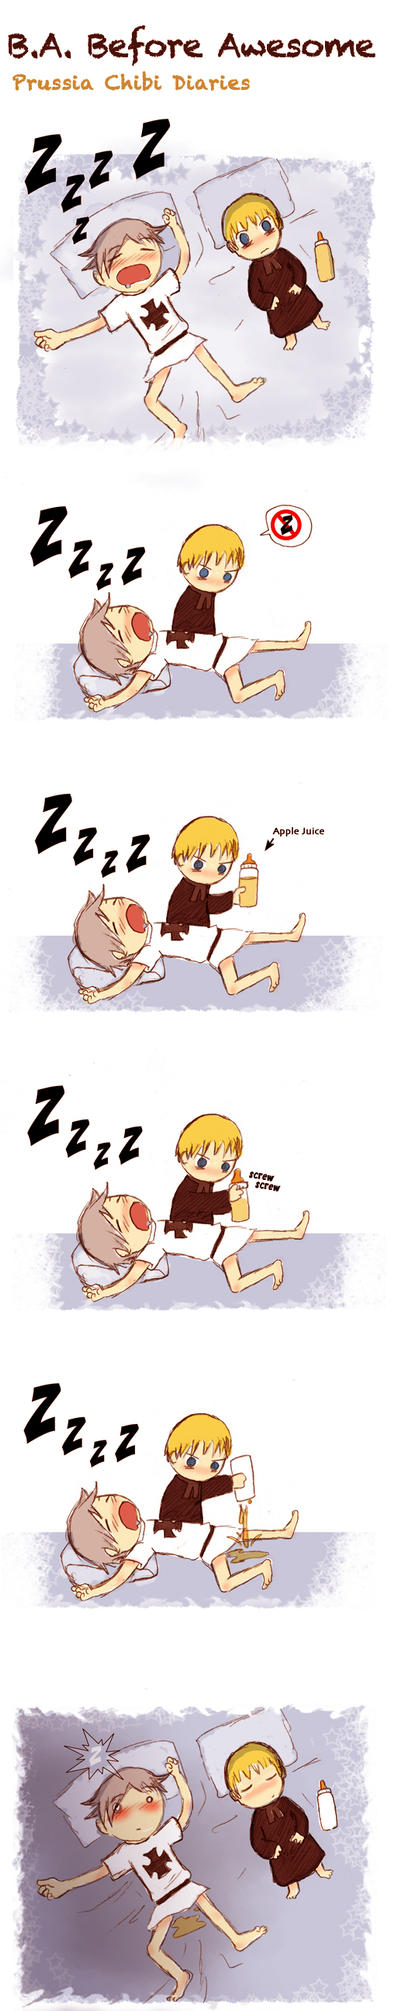 Chibi Prussia Diaries -011- by Arkham-Insanity on DeviantArt